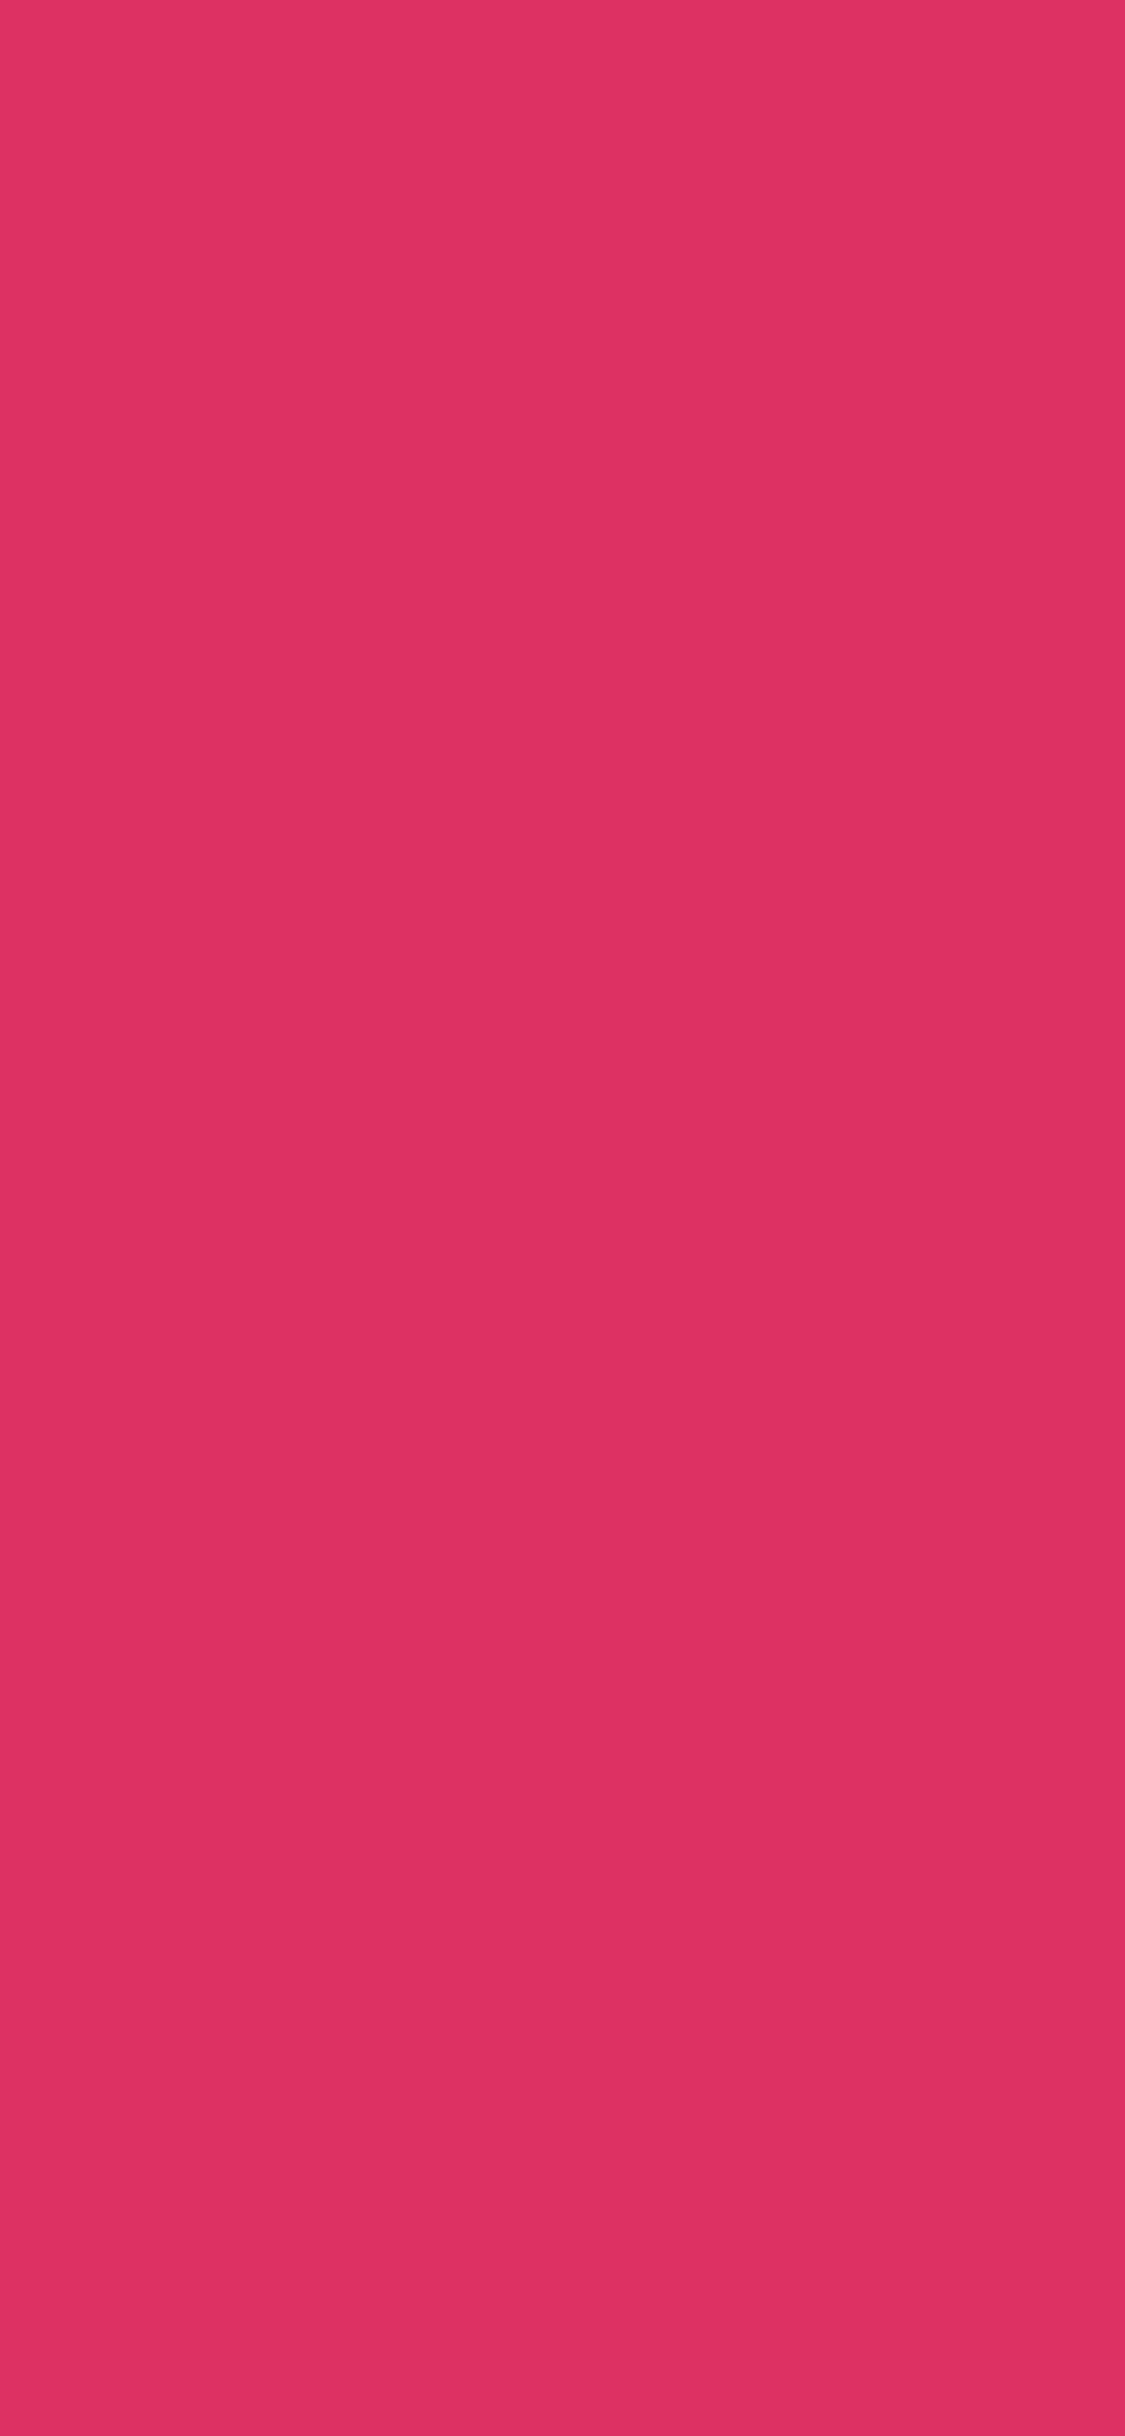 1125x2436 Cherry Solid Color Background